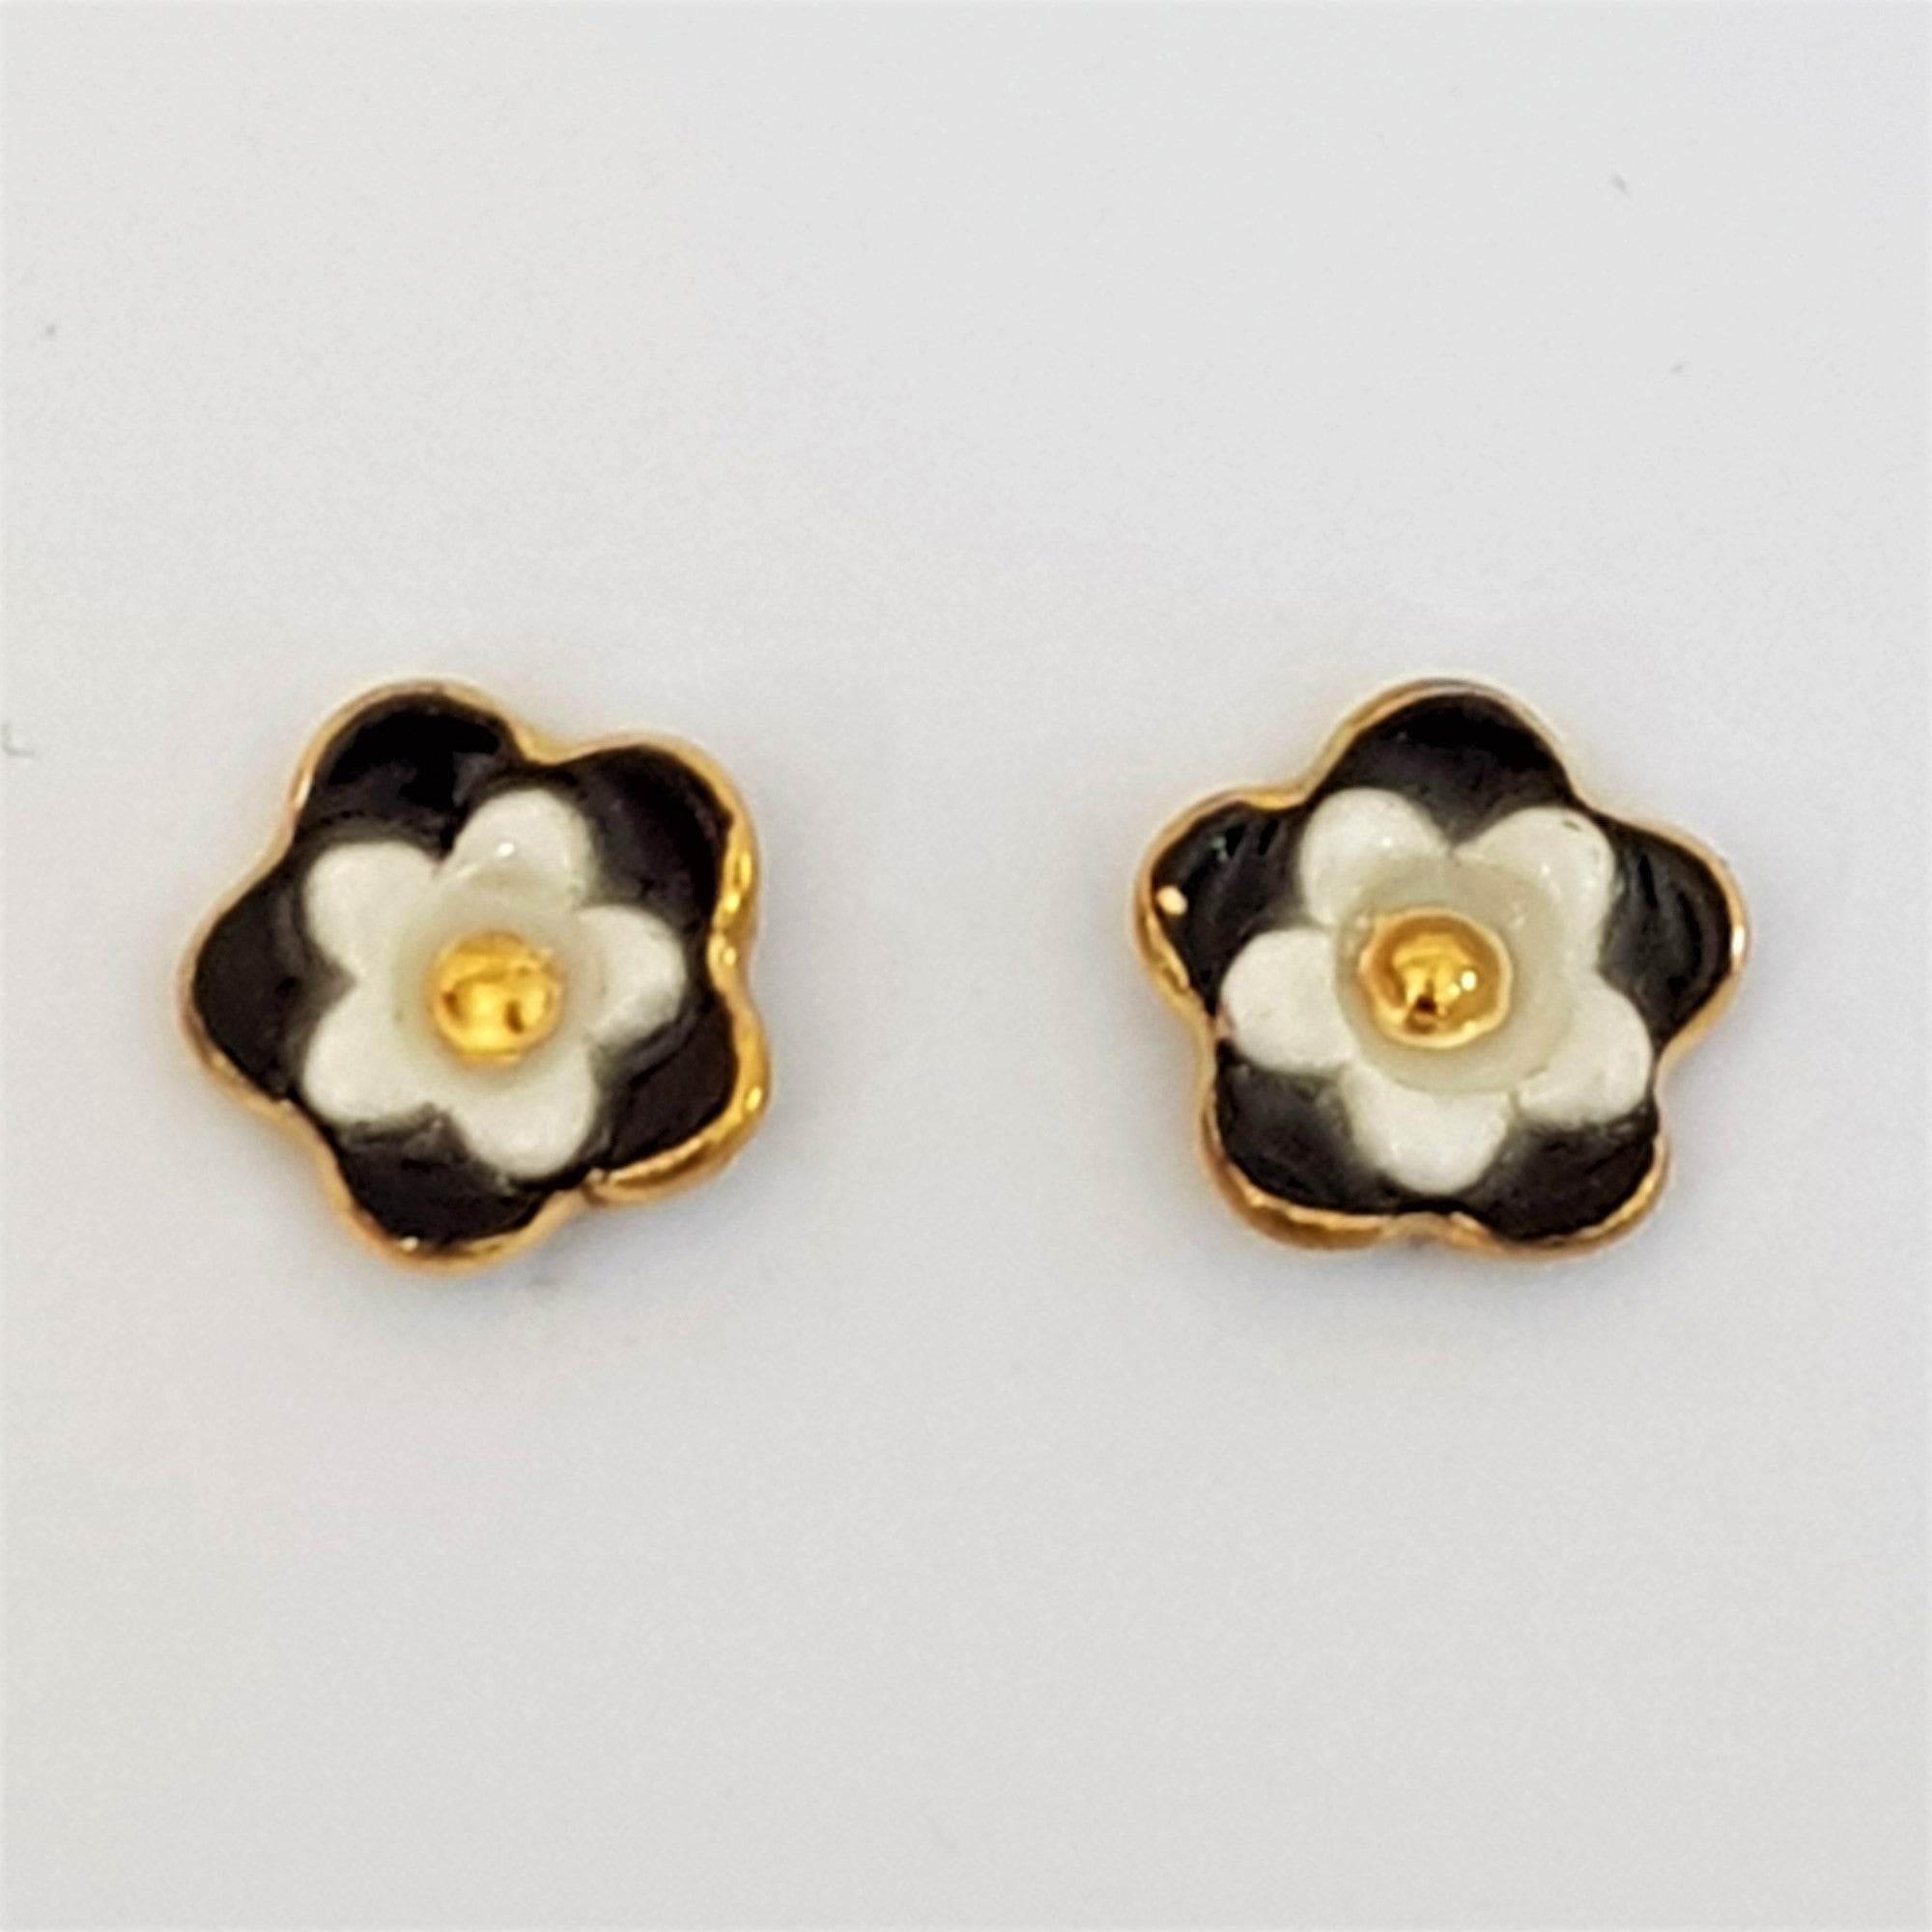 Floral collective studs in black and white.